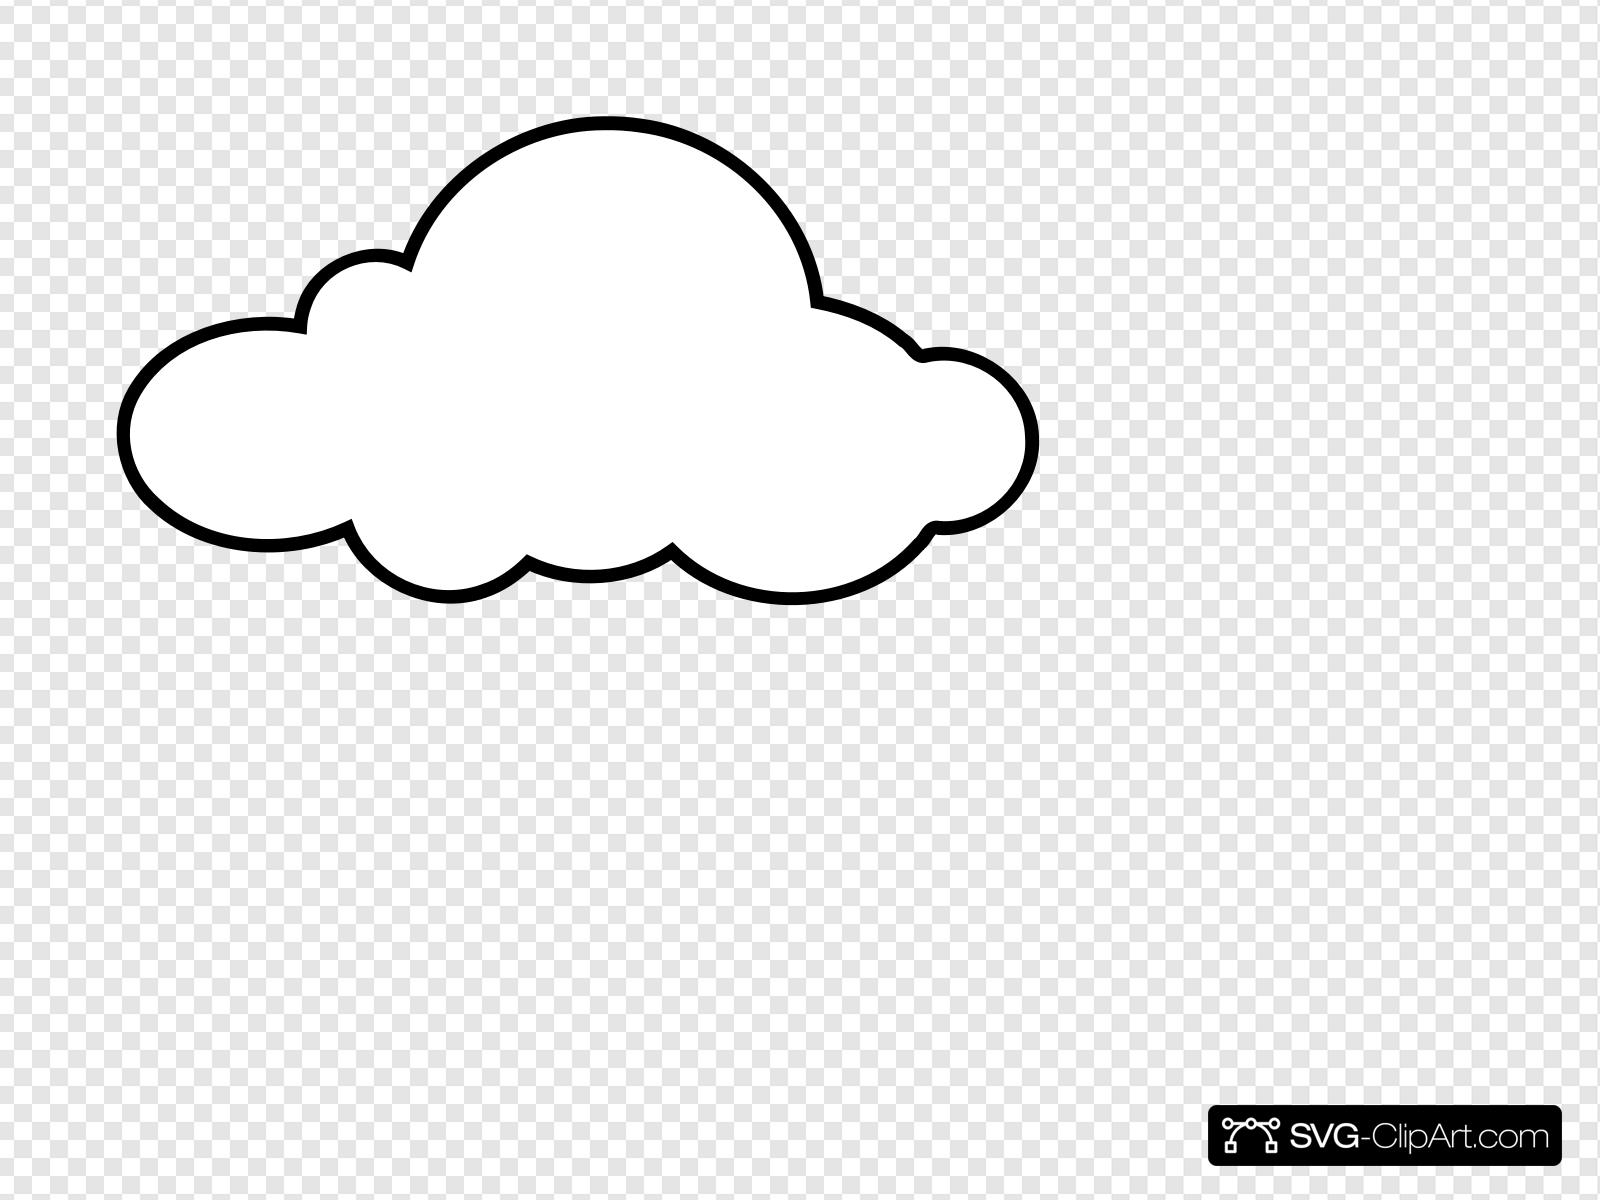 White Cloud Clip art, Icon and SVG.